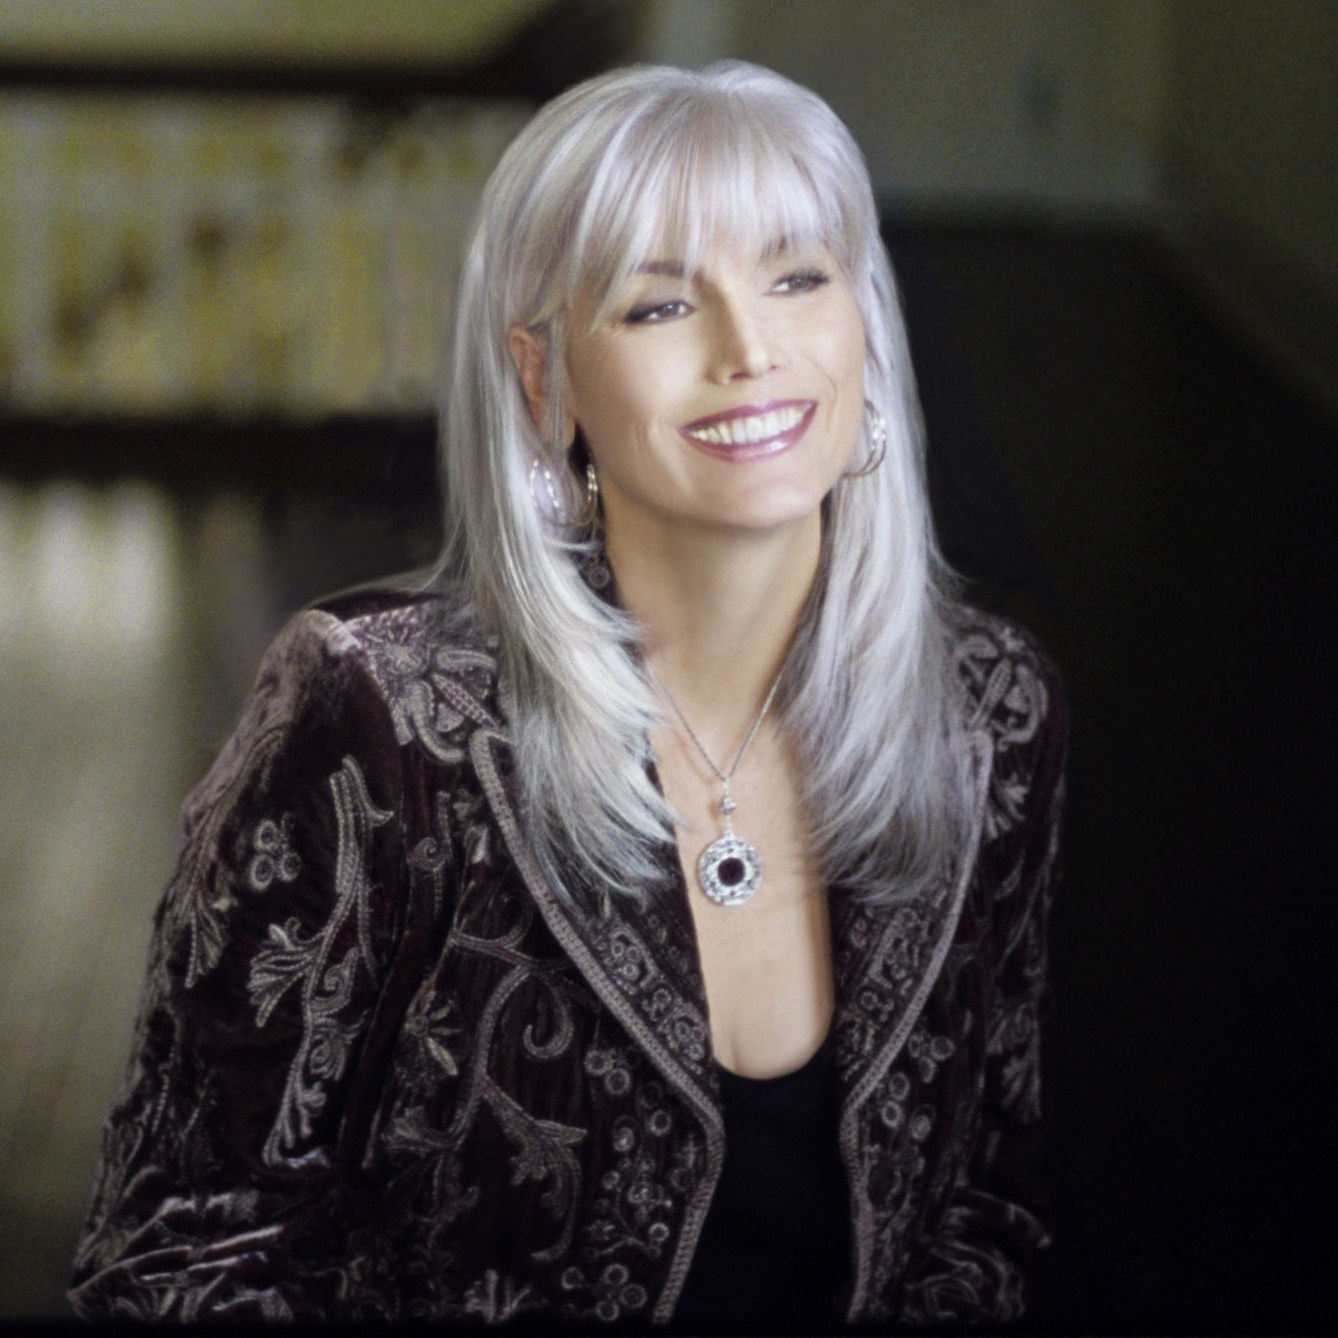 Emmylou Harris Hot If you could hang with any